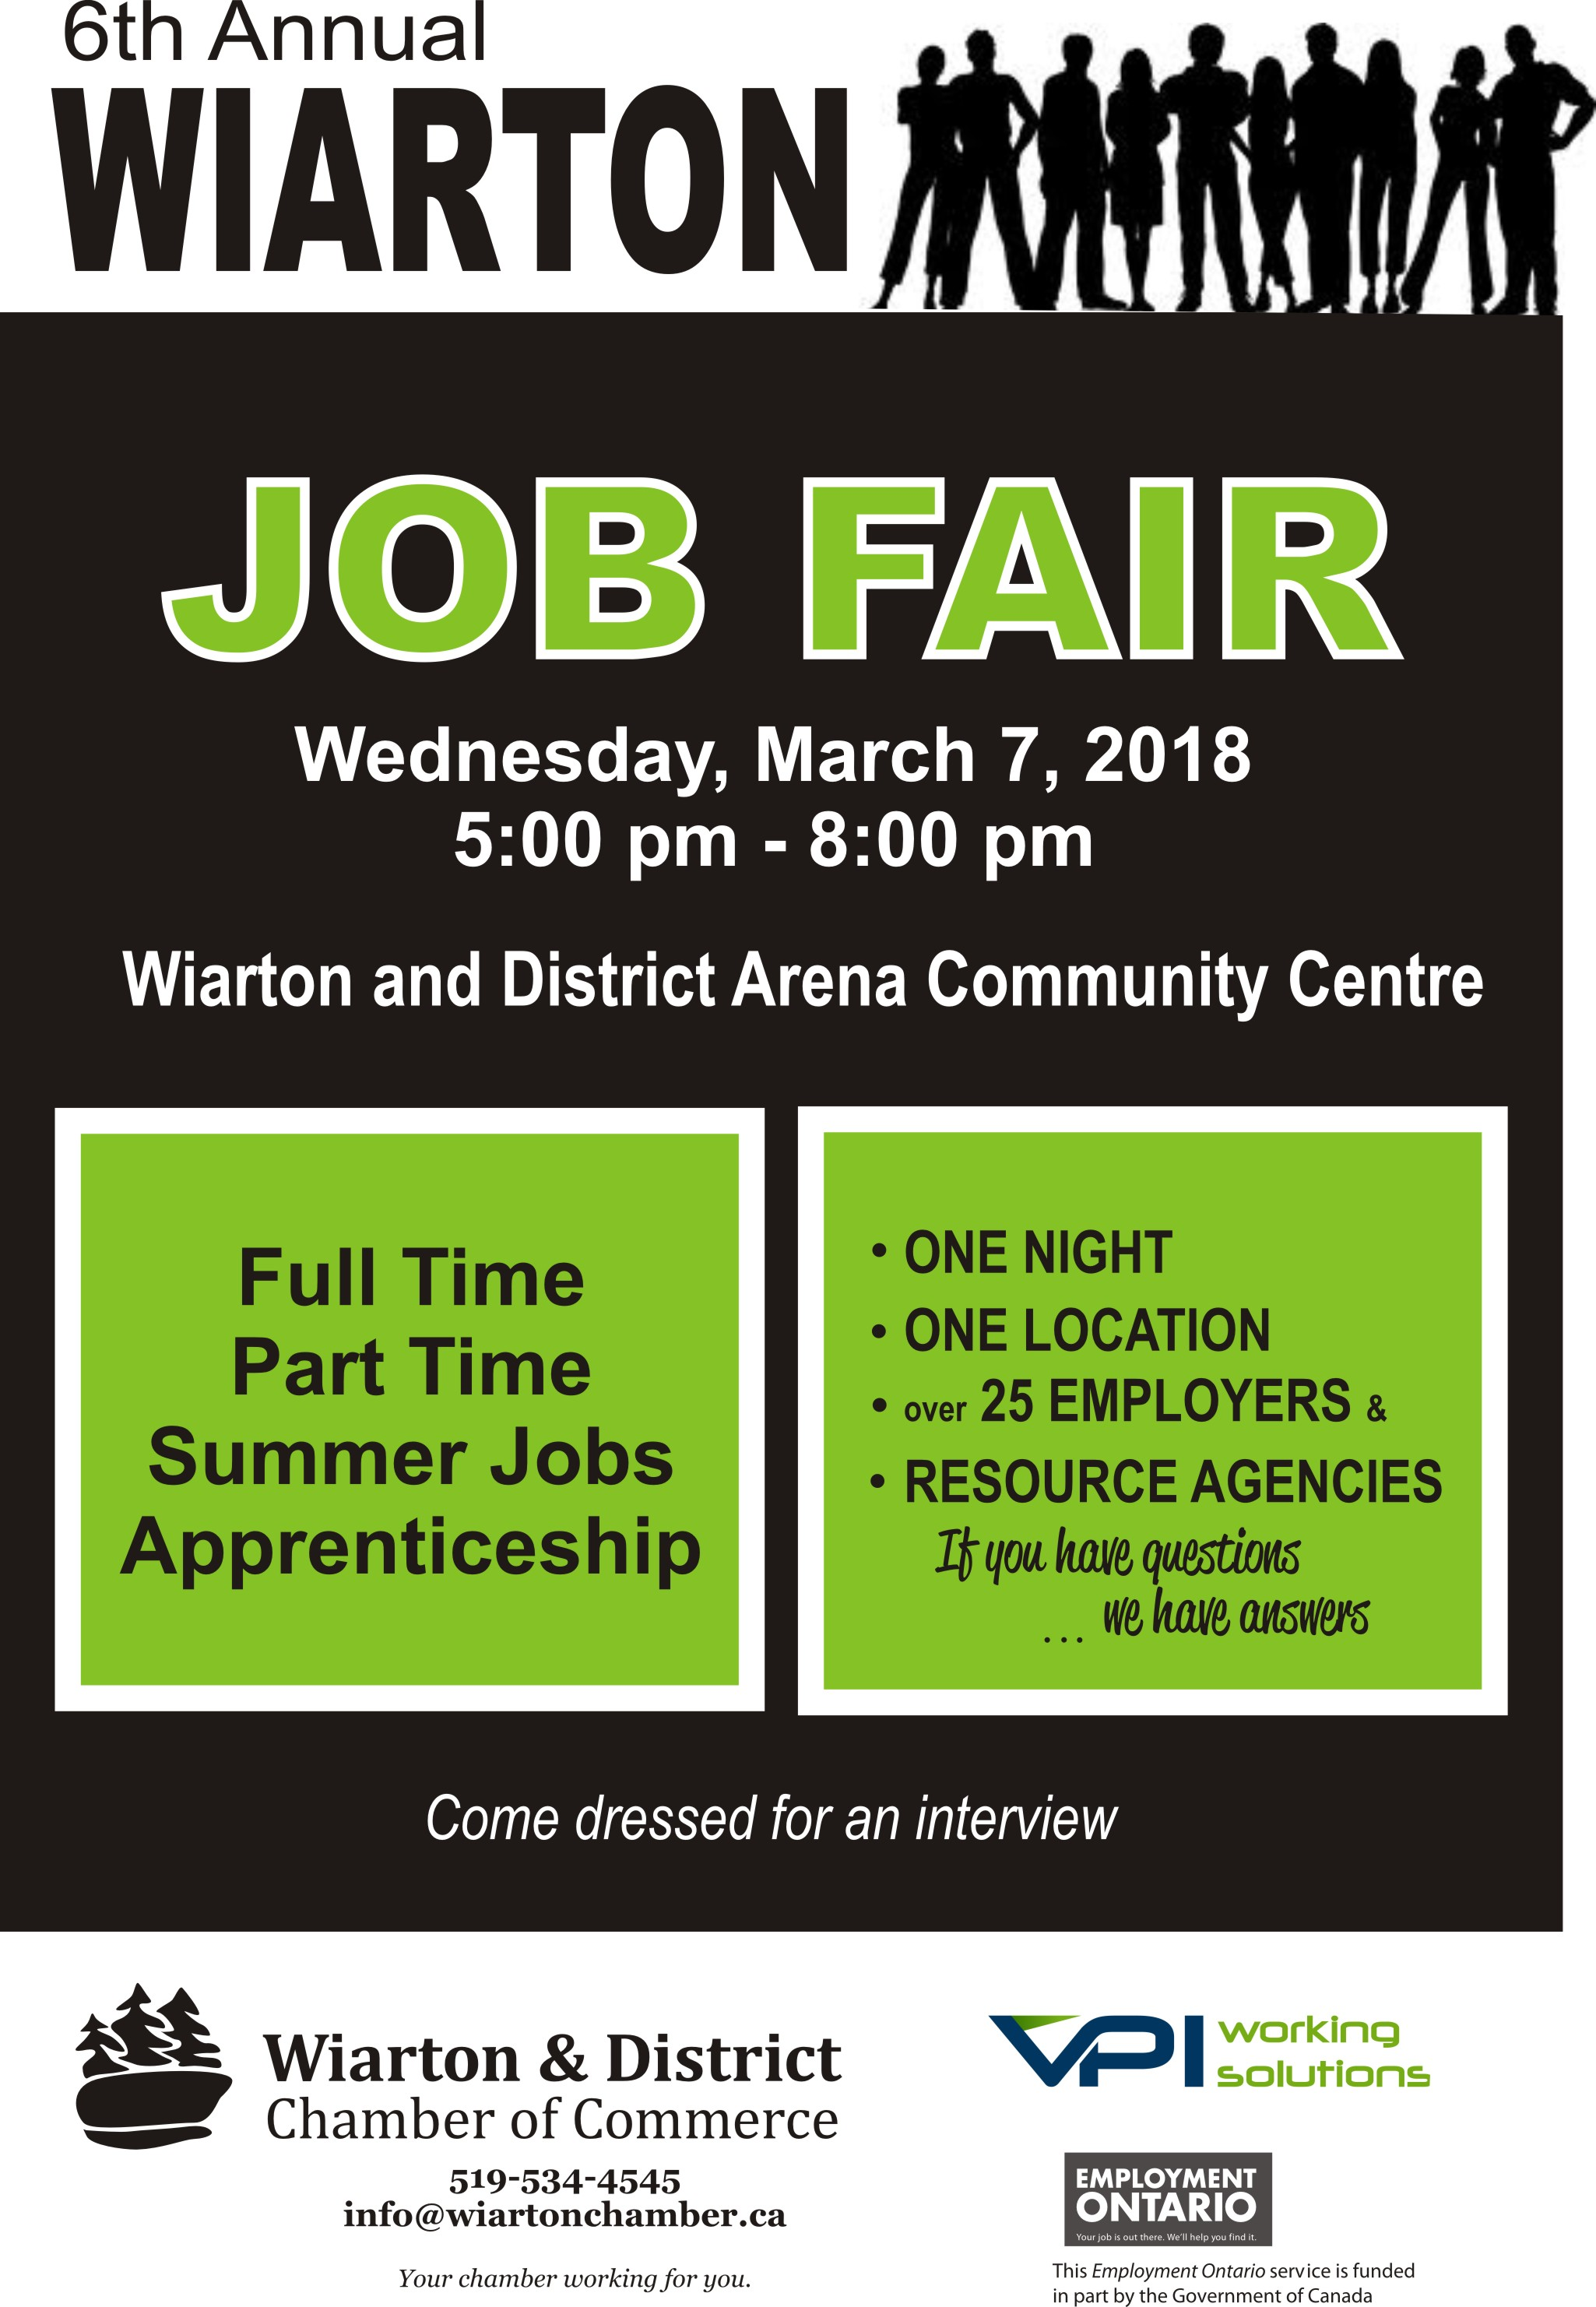 6th Annual Wiarton Job Fair